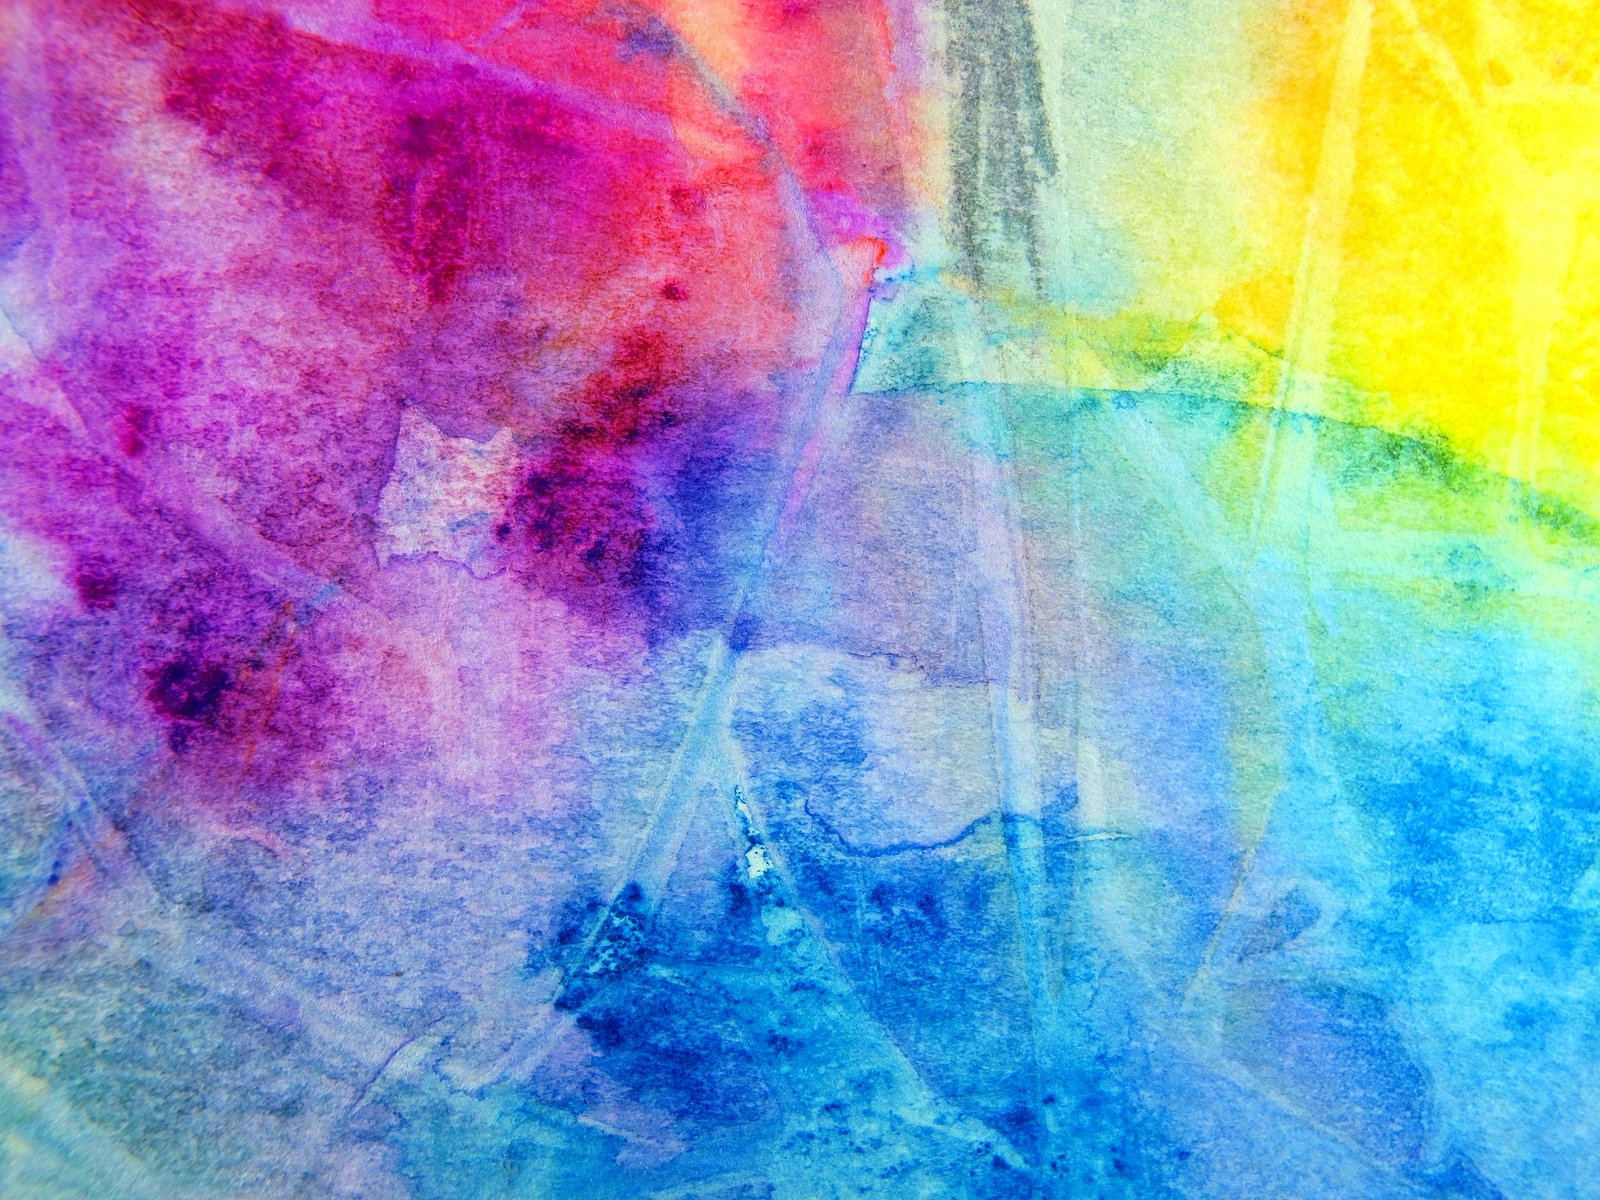 Visionary colors bring me creativity - what brings you innovation?